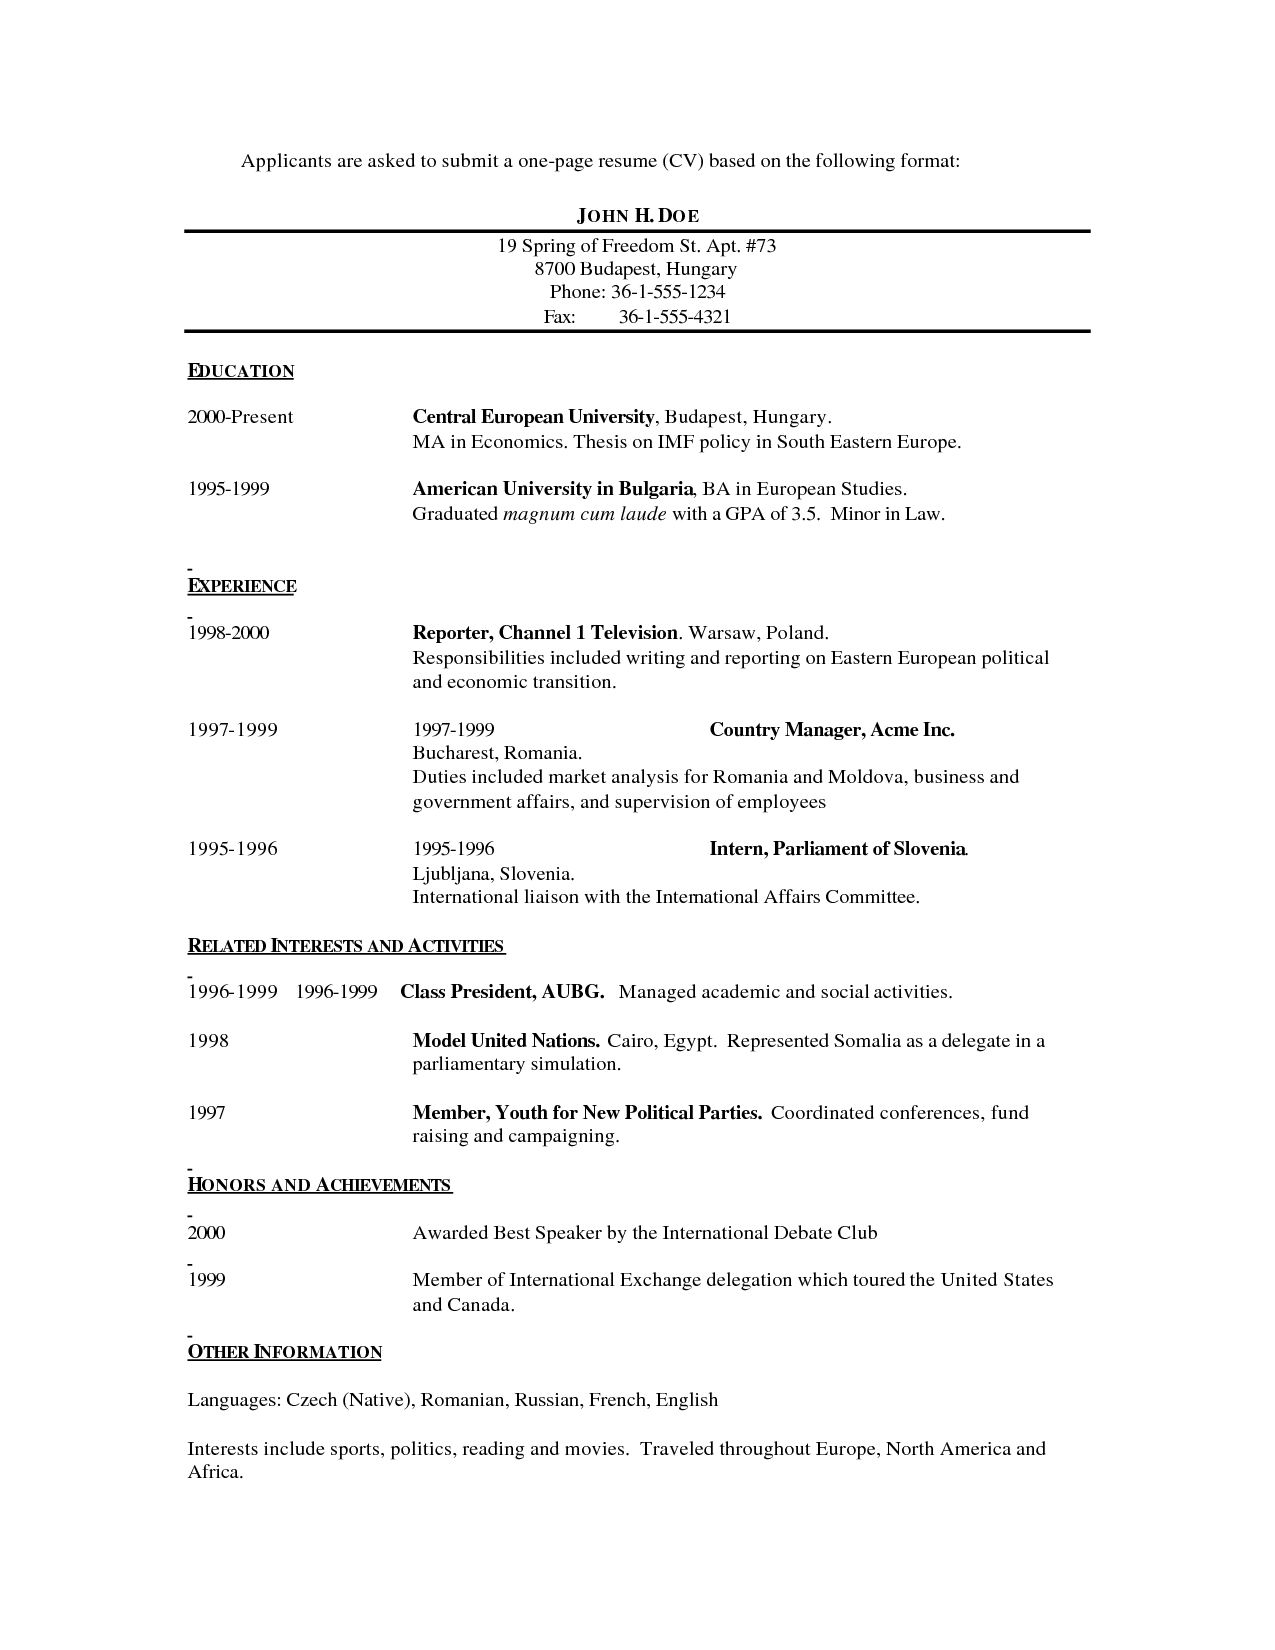 Format For Job Resume Simple 1 Job  Template Job Resume And Free